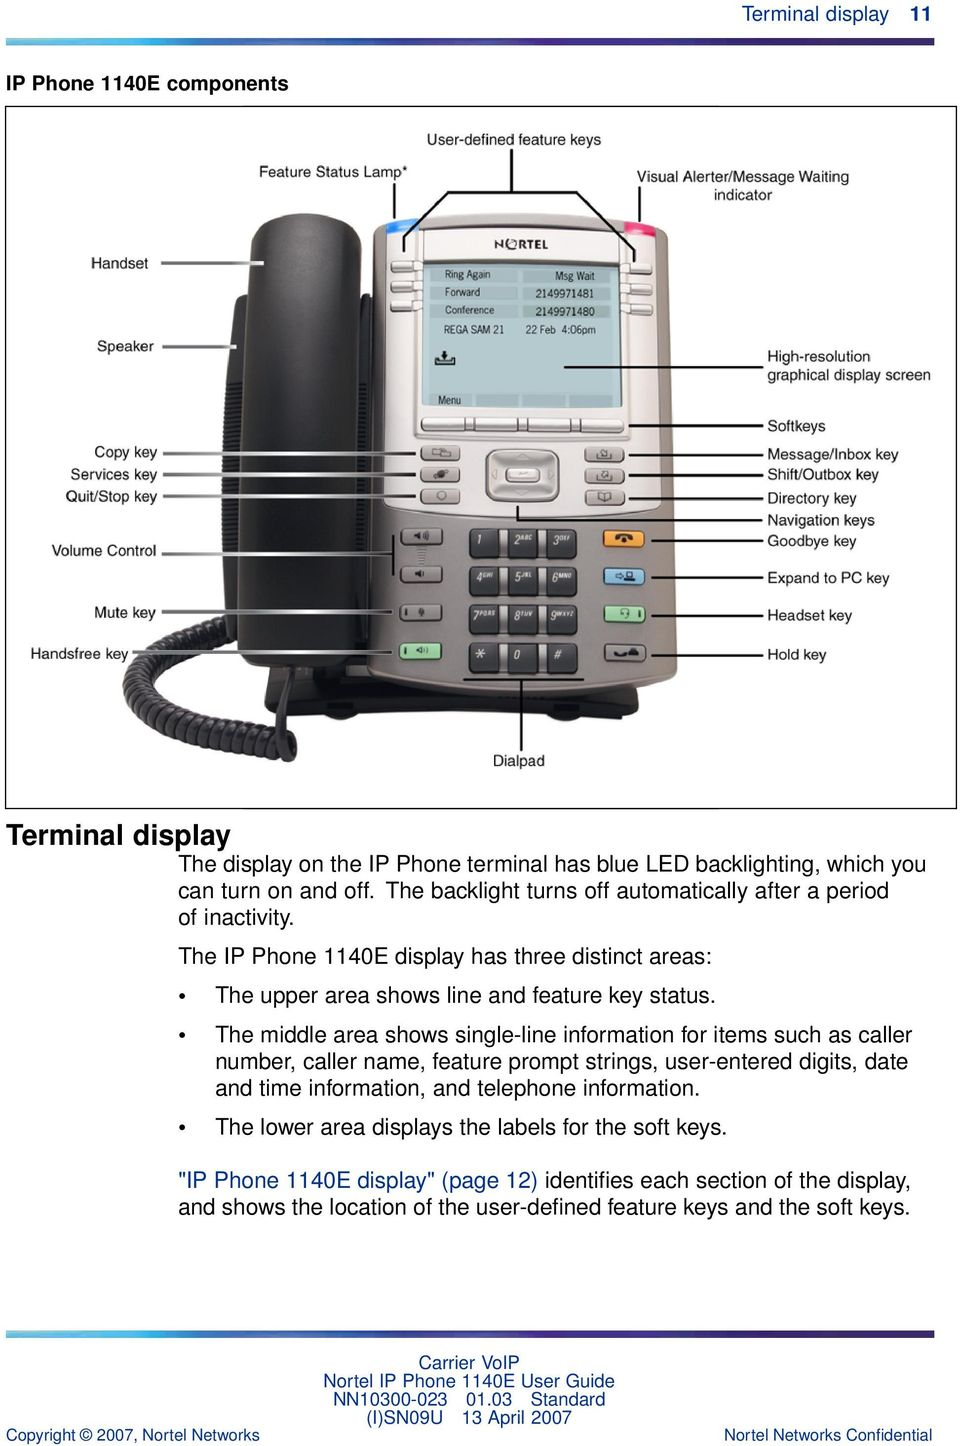 information for items such as caller number, caller name, feature prompt strings, user-entered digits, date and time information, and telephone information The lower area displays the